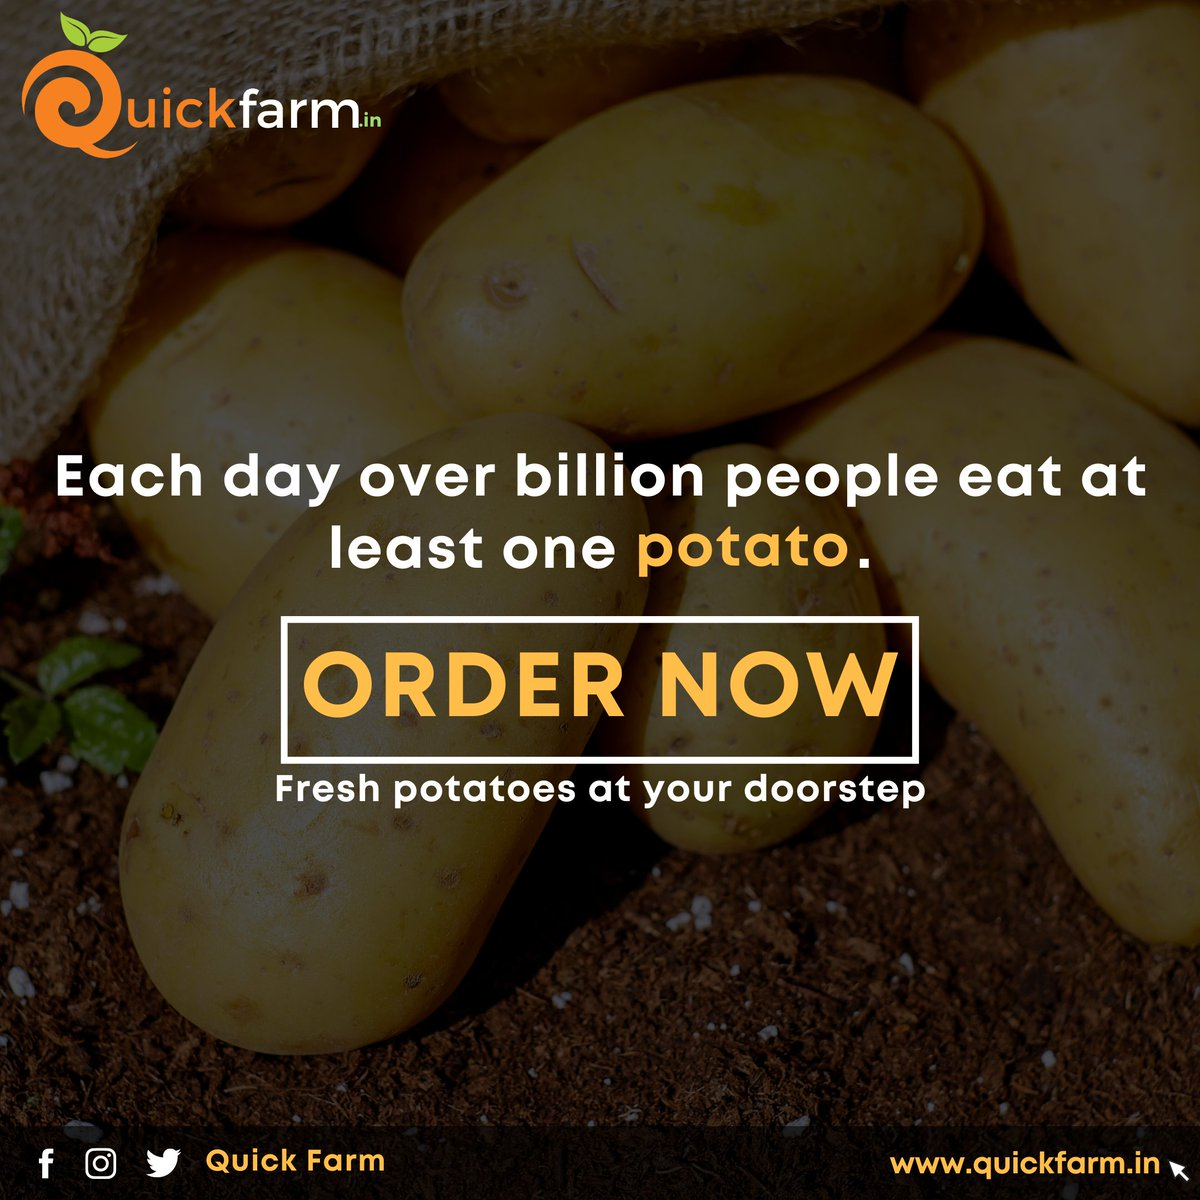 "Use Coupon code:-""FIRST10"" For flat 10% off on your first order Order fresh & organic potatoes now!! #nutrients #chinesefood #foodgasm #healthylifestyle #organicfood #organic #WhatsApp #freshveggies #pune #punefoodblogger #coronavirus #vocalforlocal #startups #punestartuppic.twitter.com/I1BPog3omC"